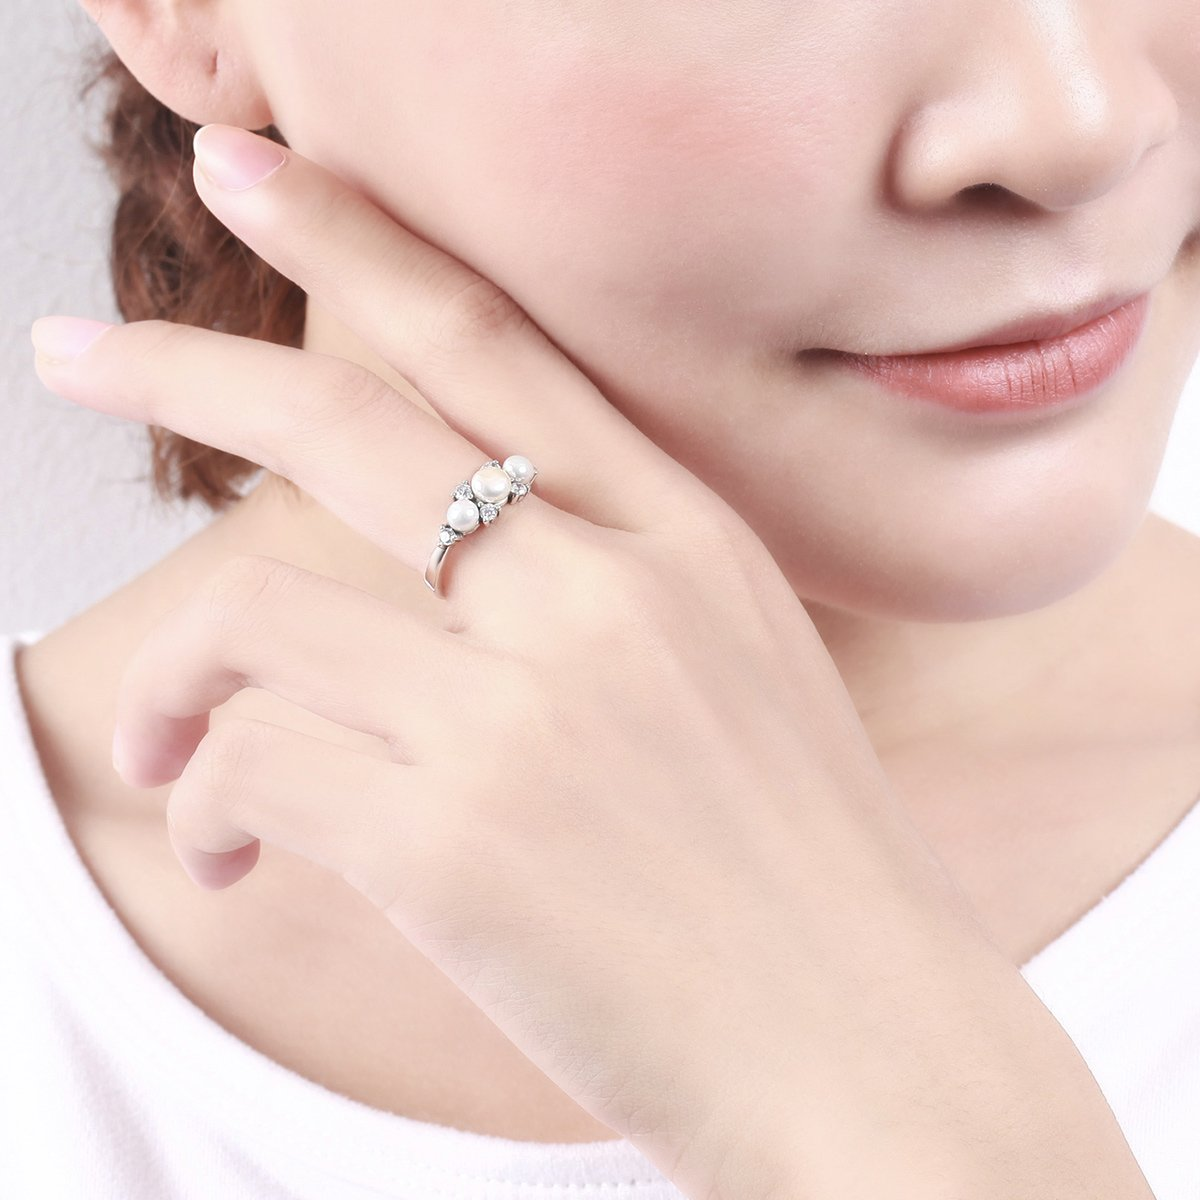 Amazon.com: BAMOER 925 Sterling Silver Gorgeous Love Freshwater ...